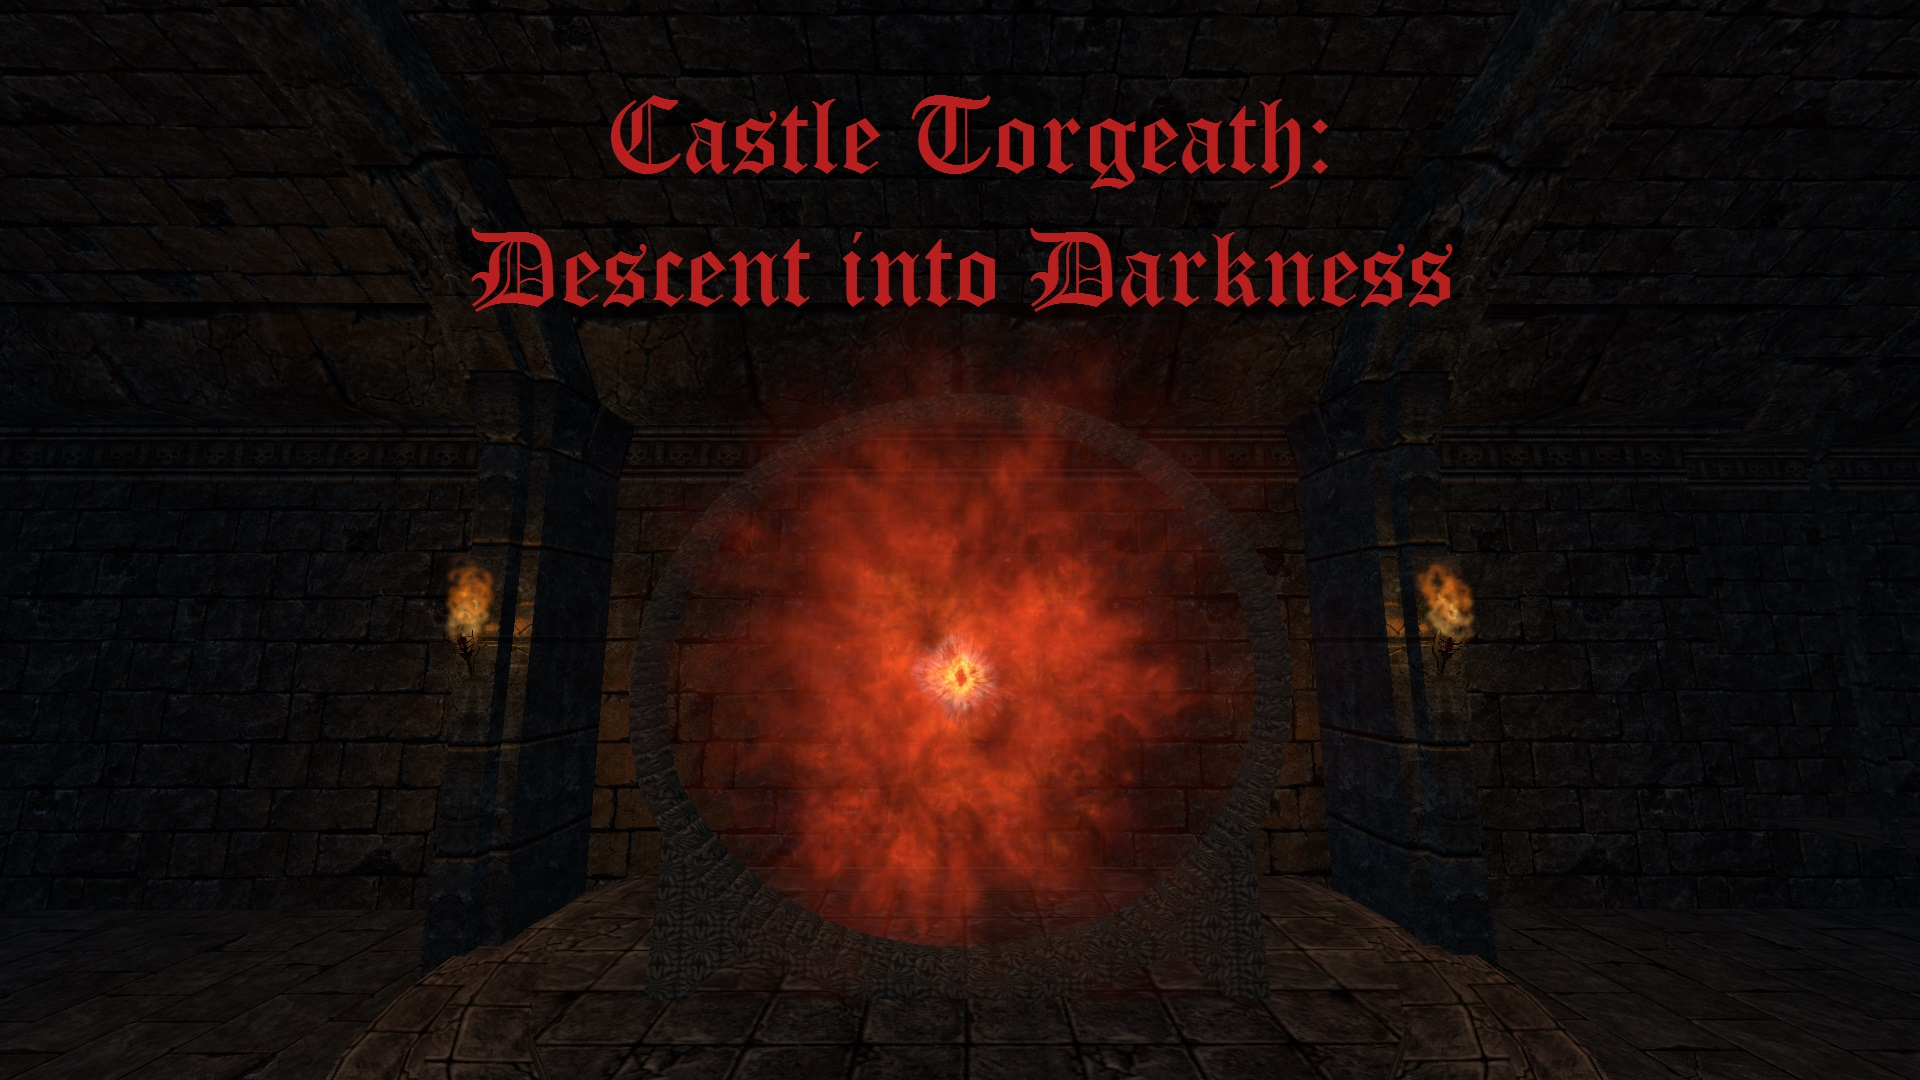 descent into darkness - photo #3